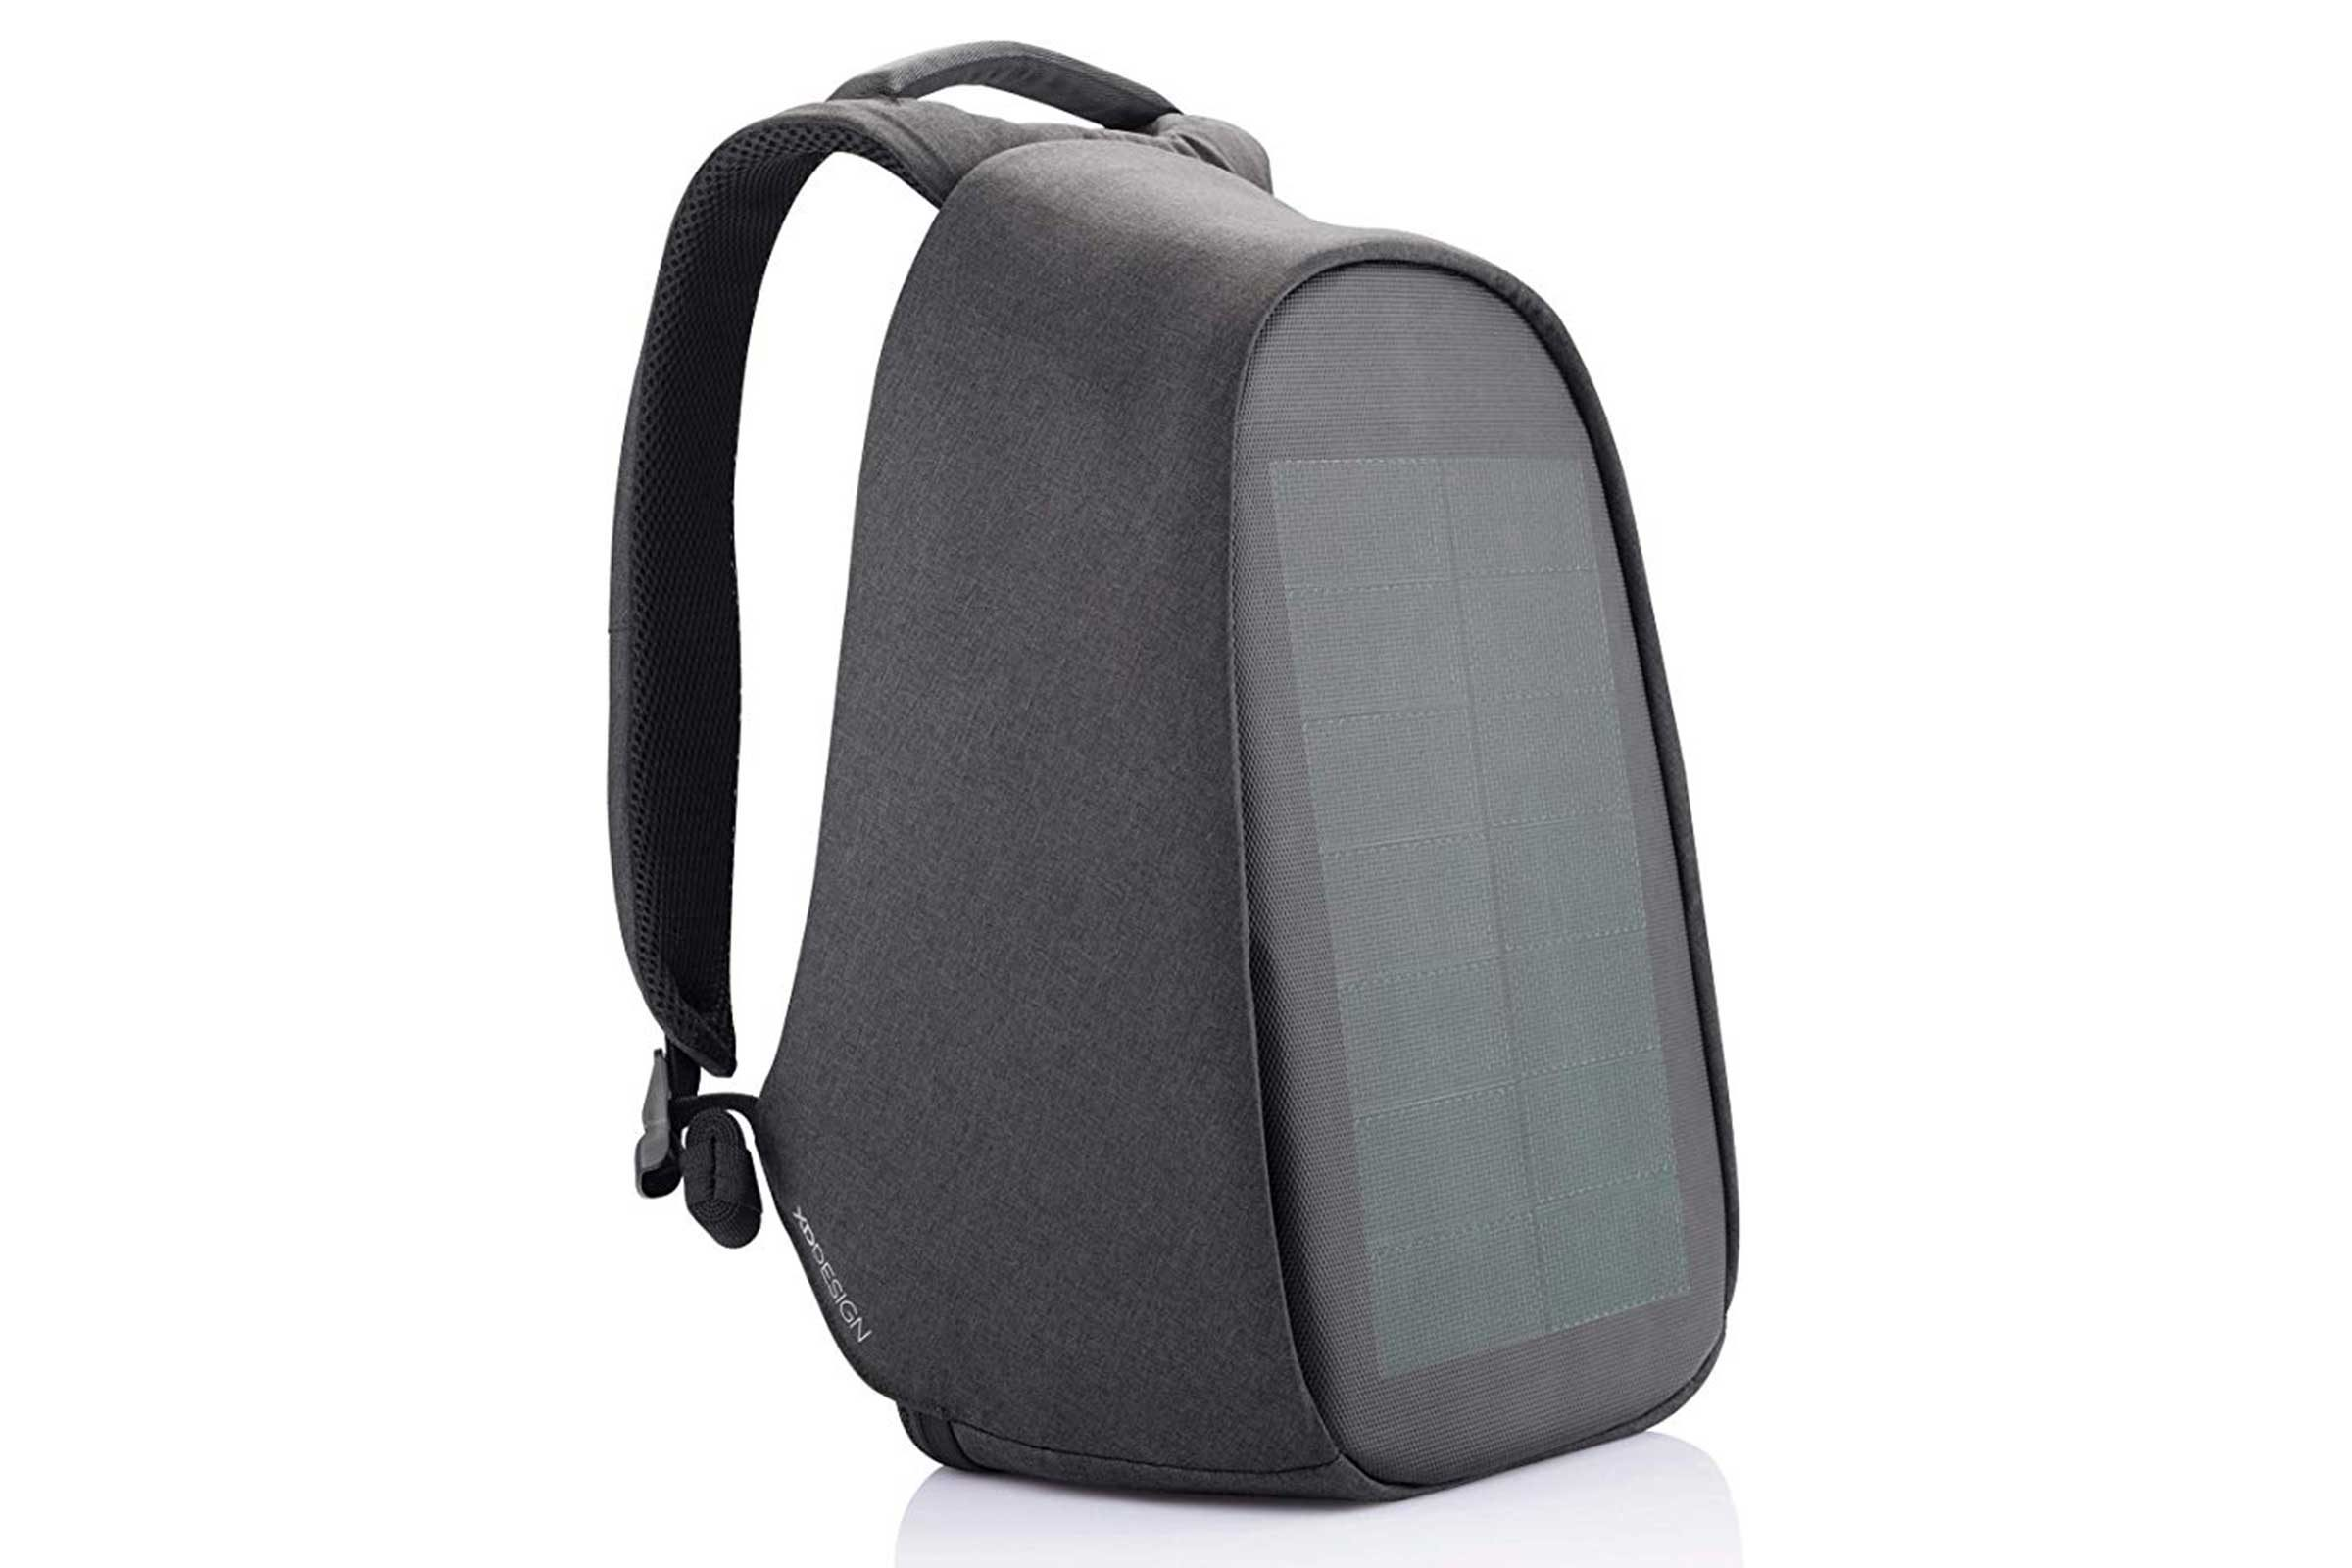 06_The-Bobby-Tech-Anti-Theft-Backpack